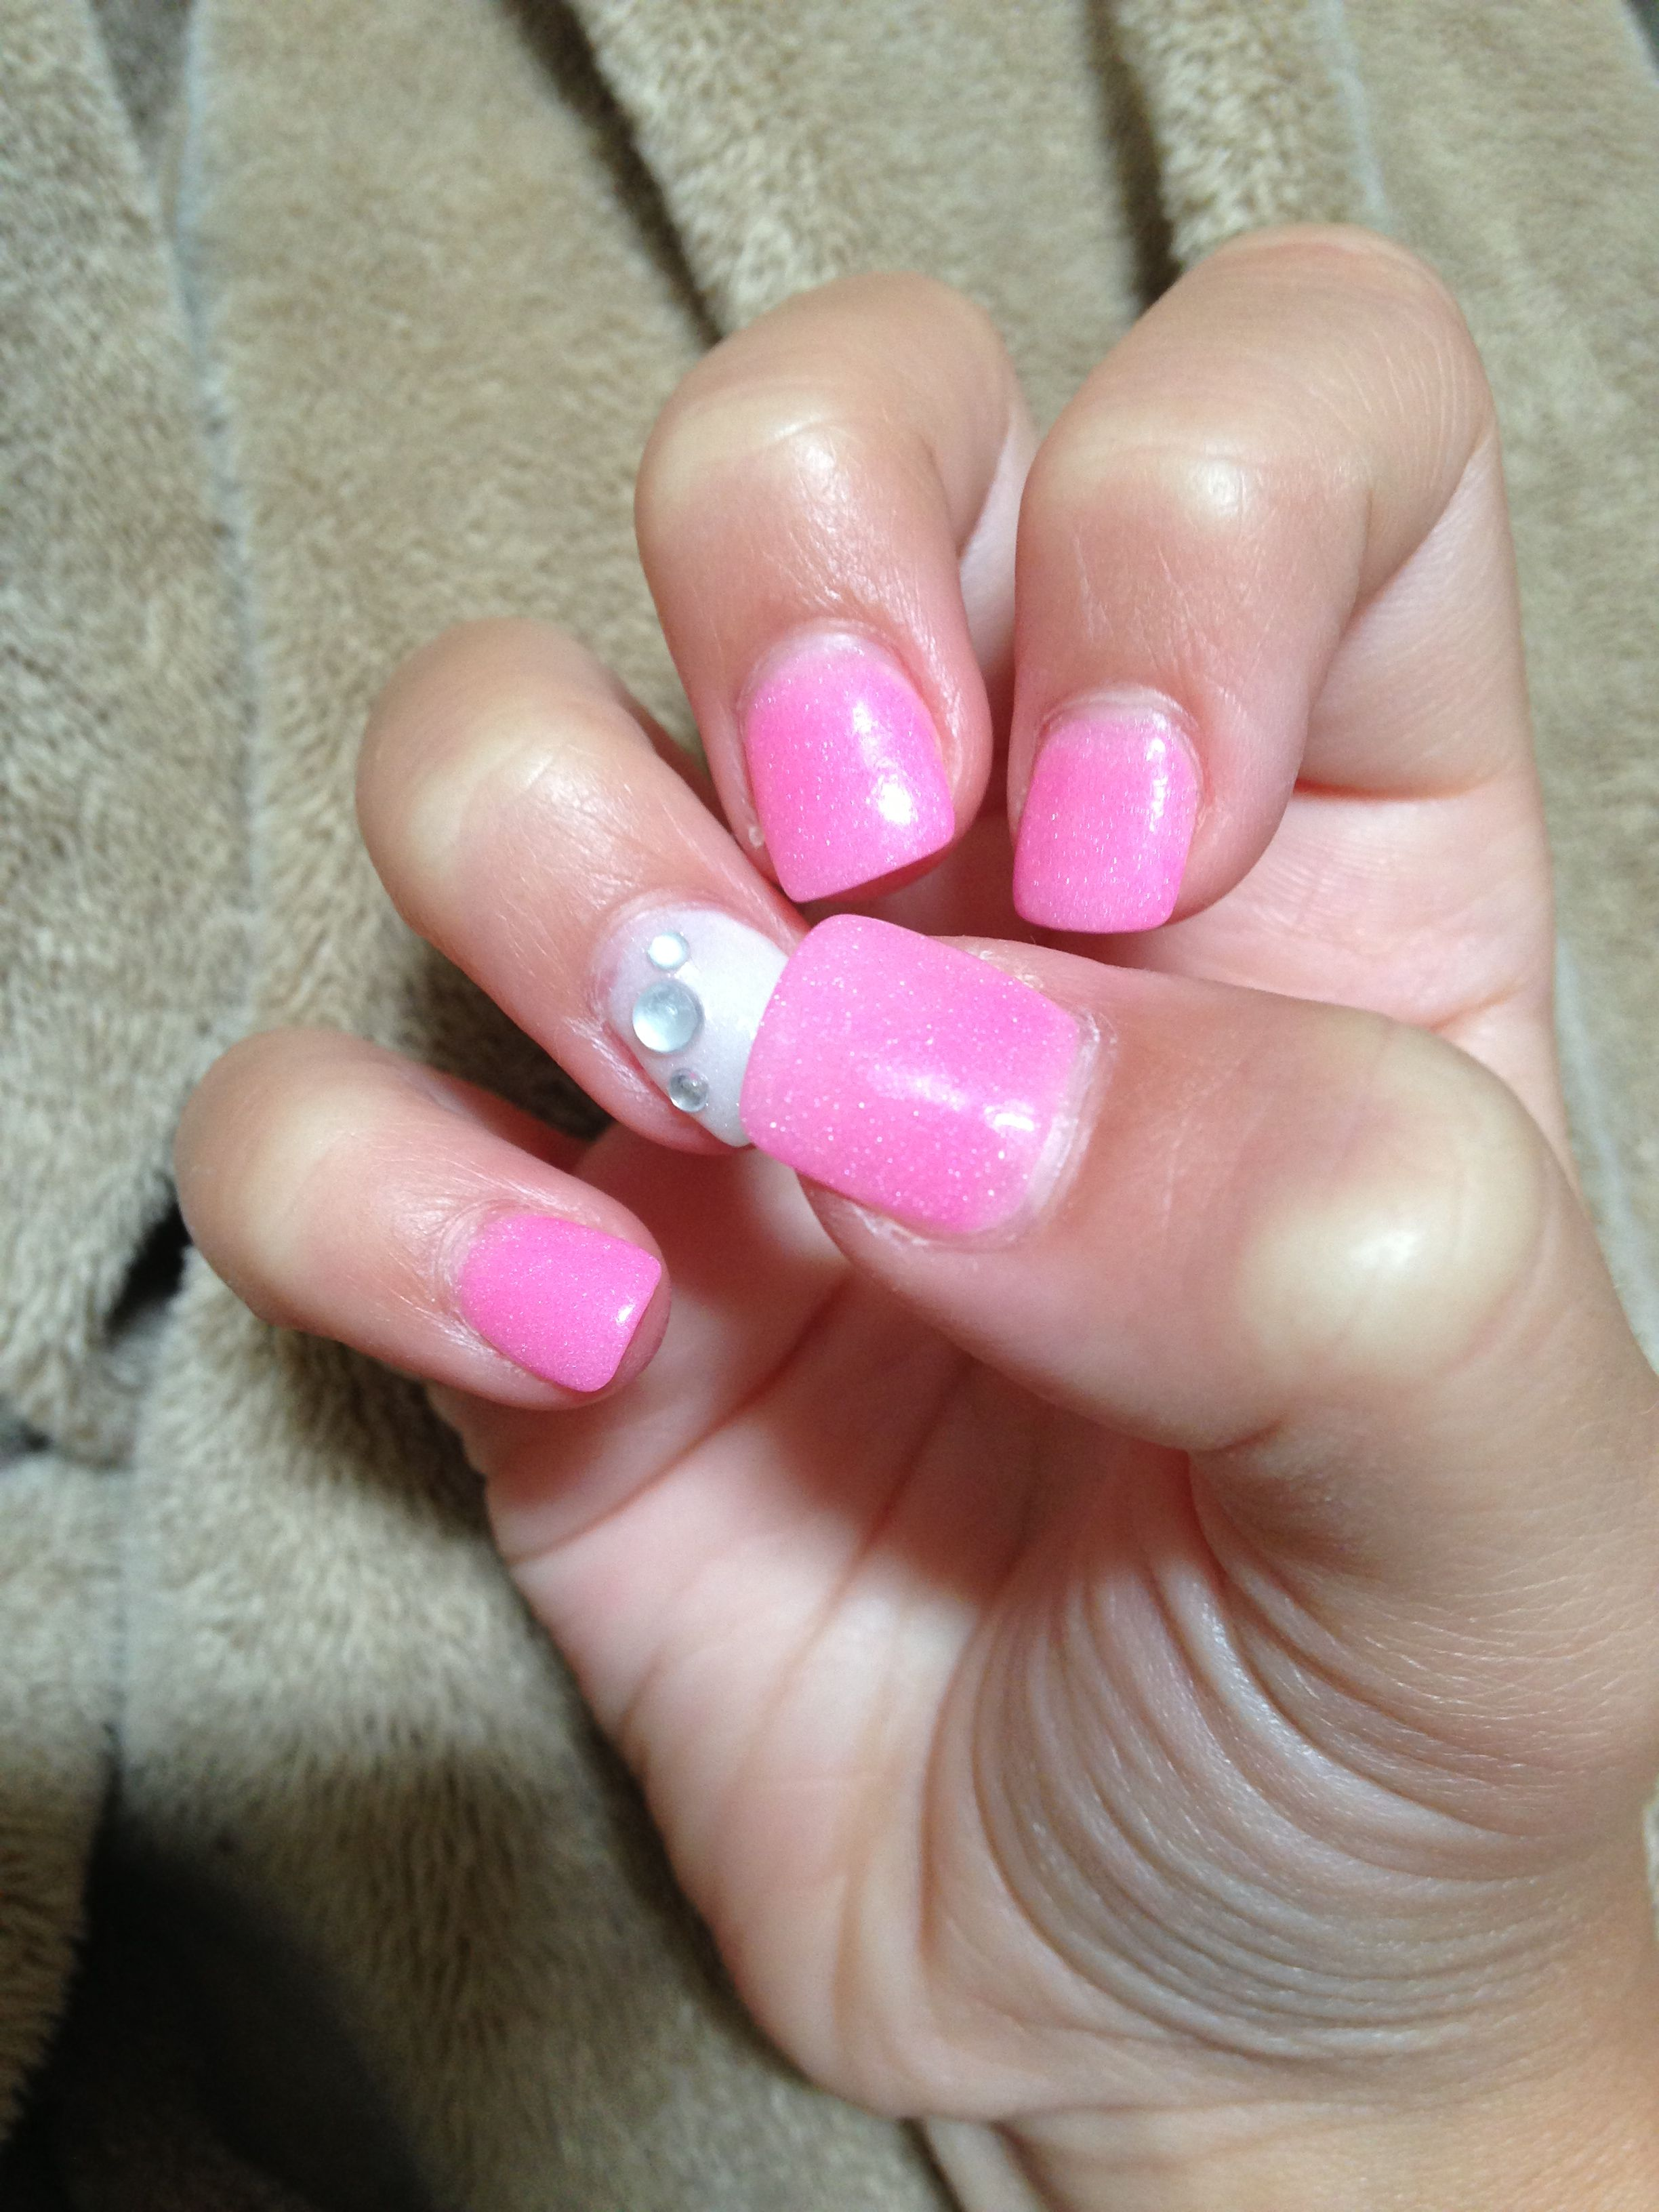 Nexgen Nails French Manicure: Nexgen Nails!!!!they R So Fun To Do If Acrylic Nails R To